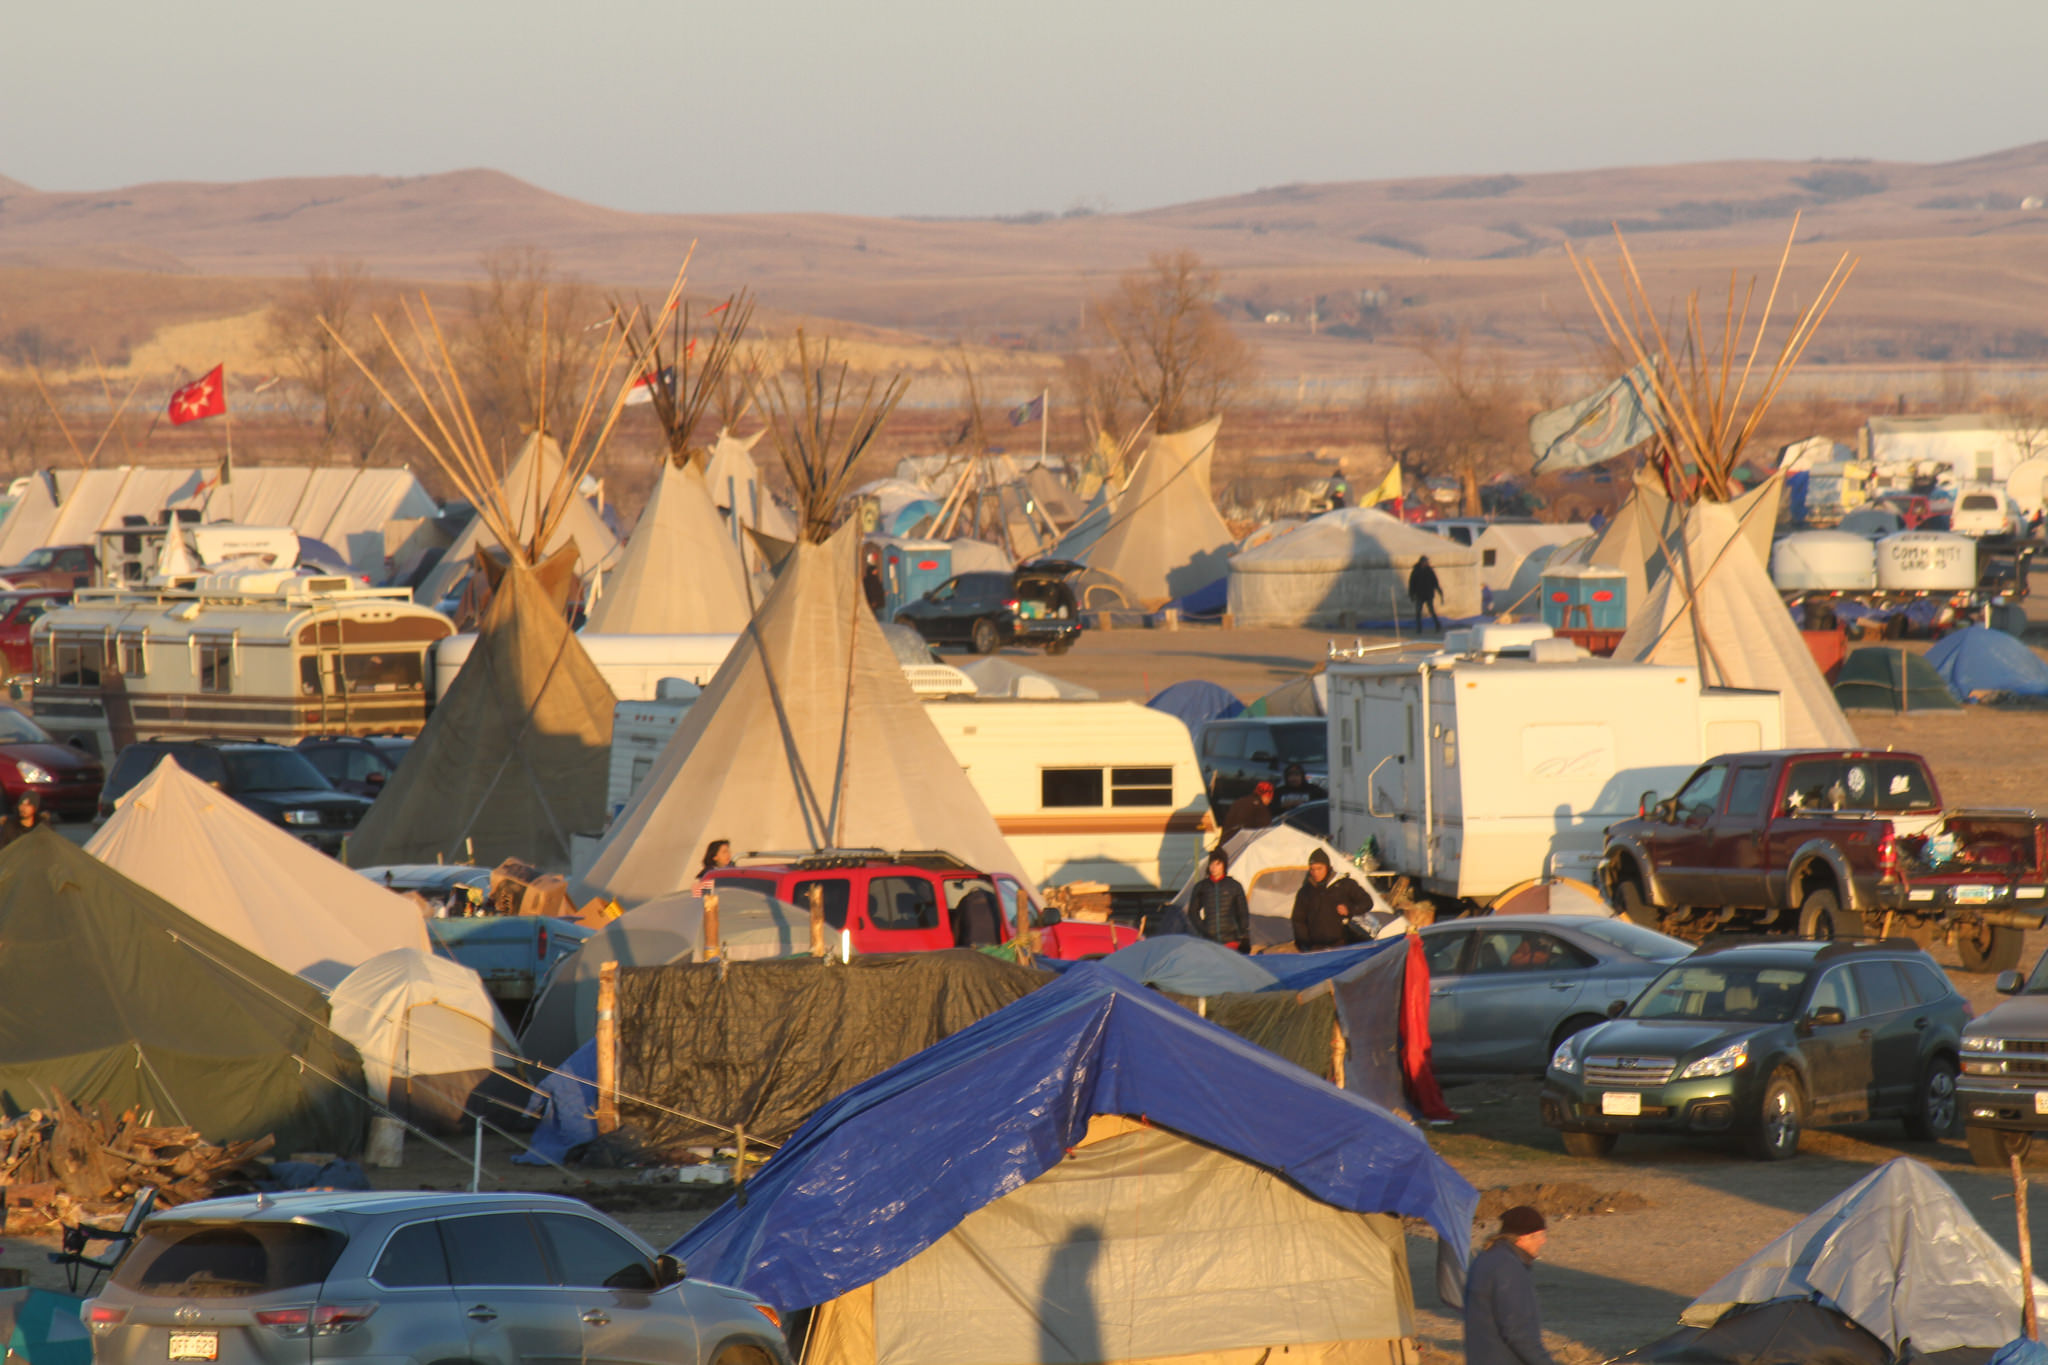 On the Ground in Standing Rock